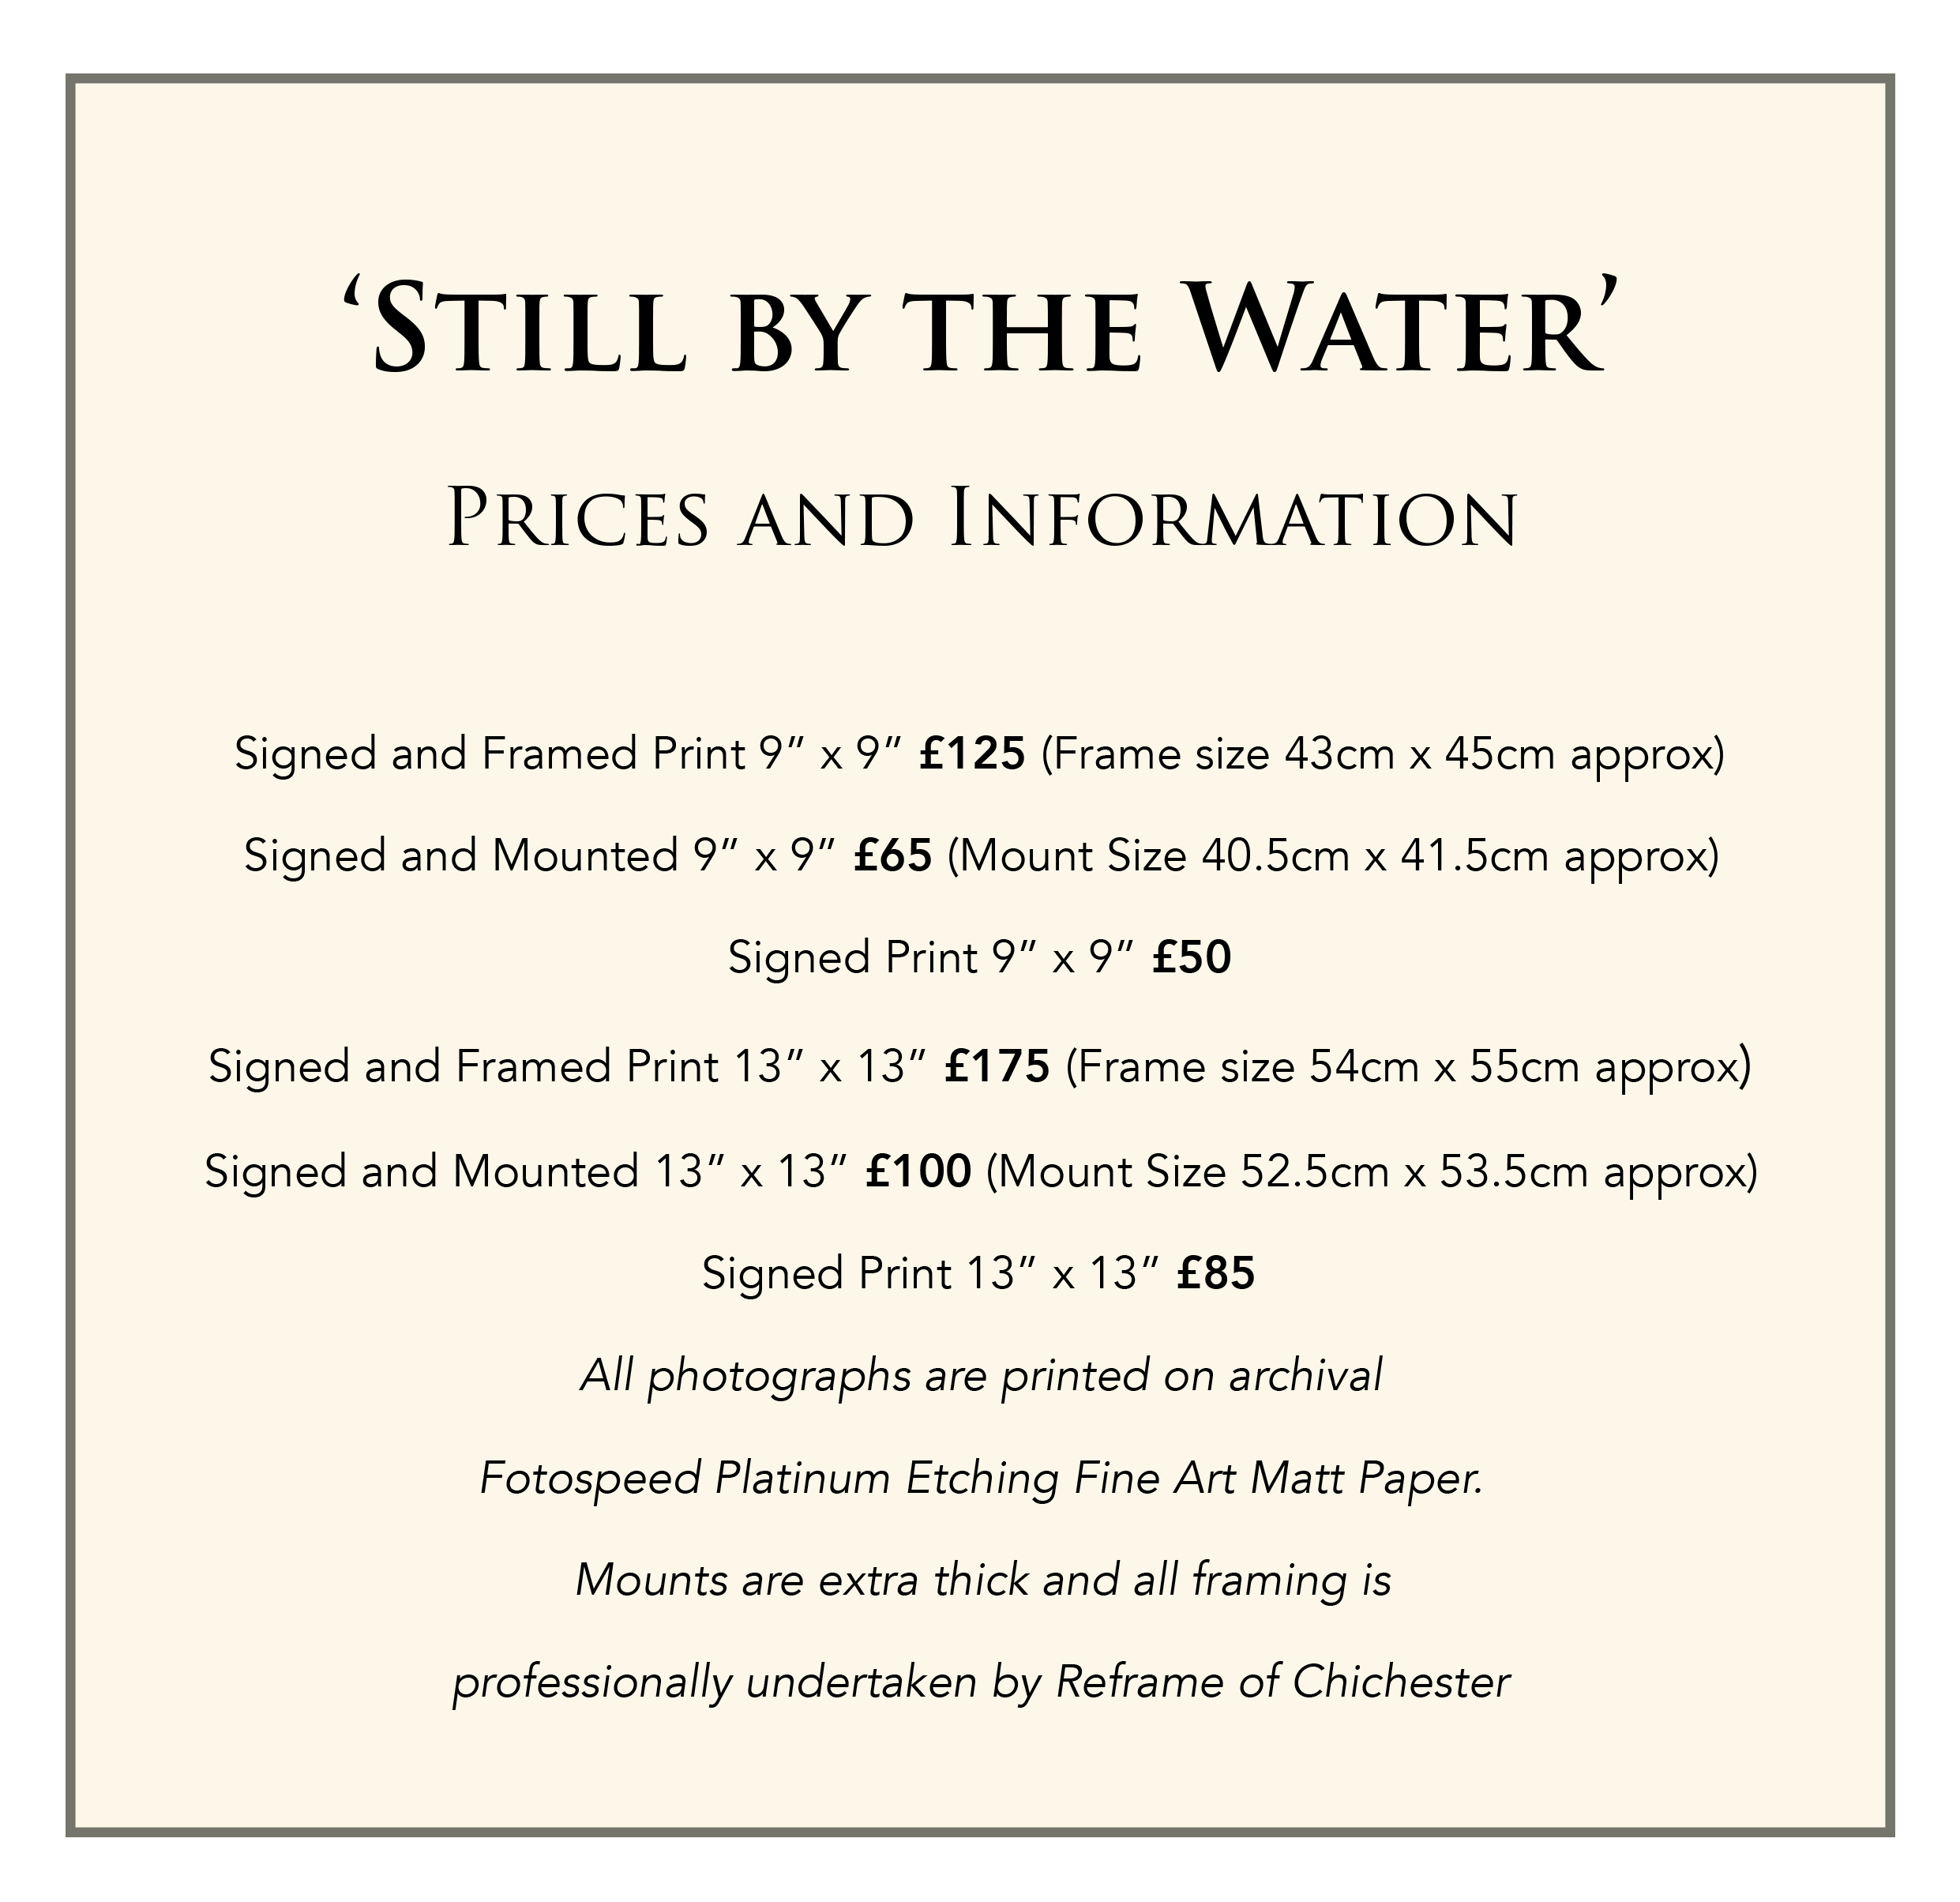 Still by the water prices for website